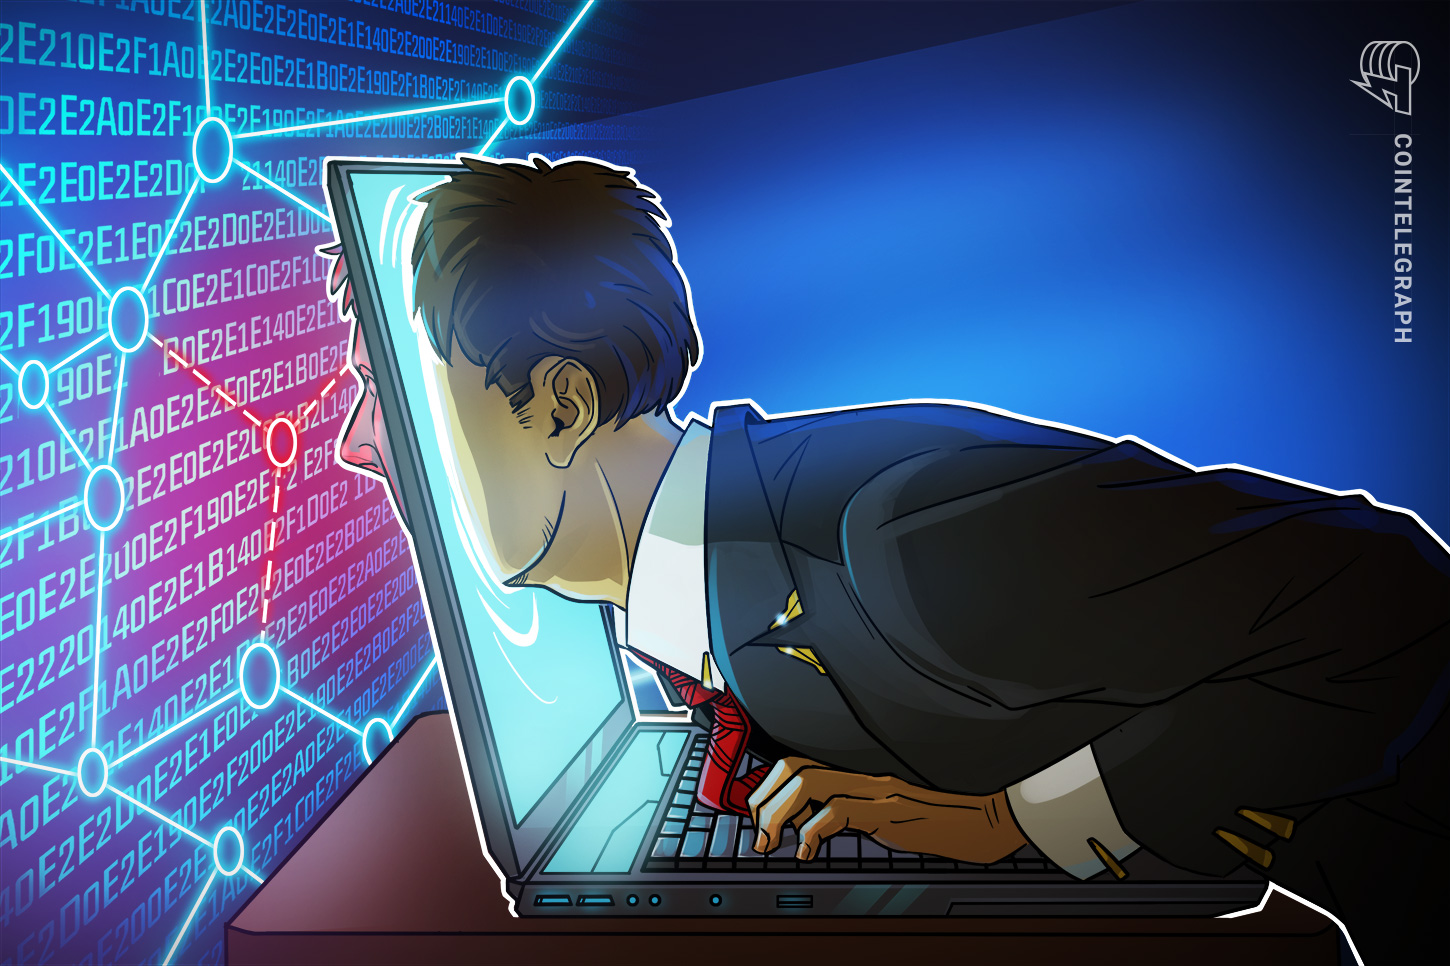 Bug in Ethereum client leads to split — EVM-compatible chains at risk